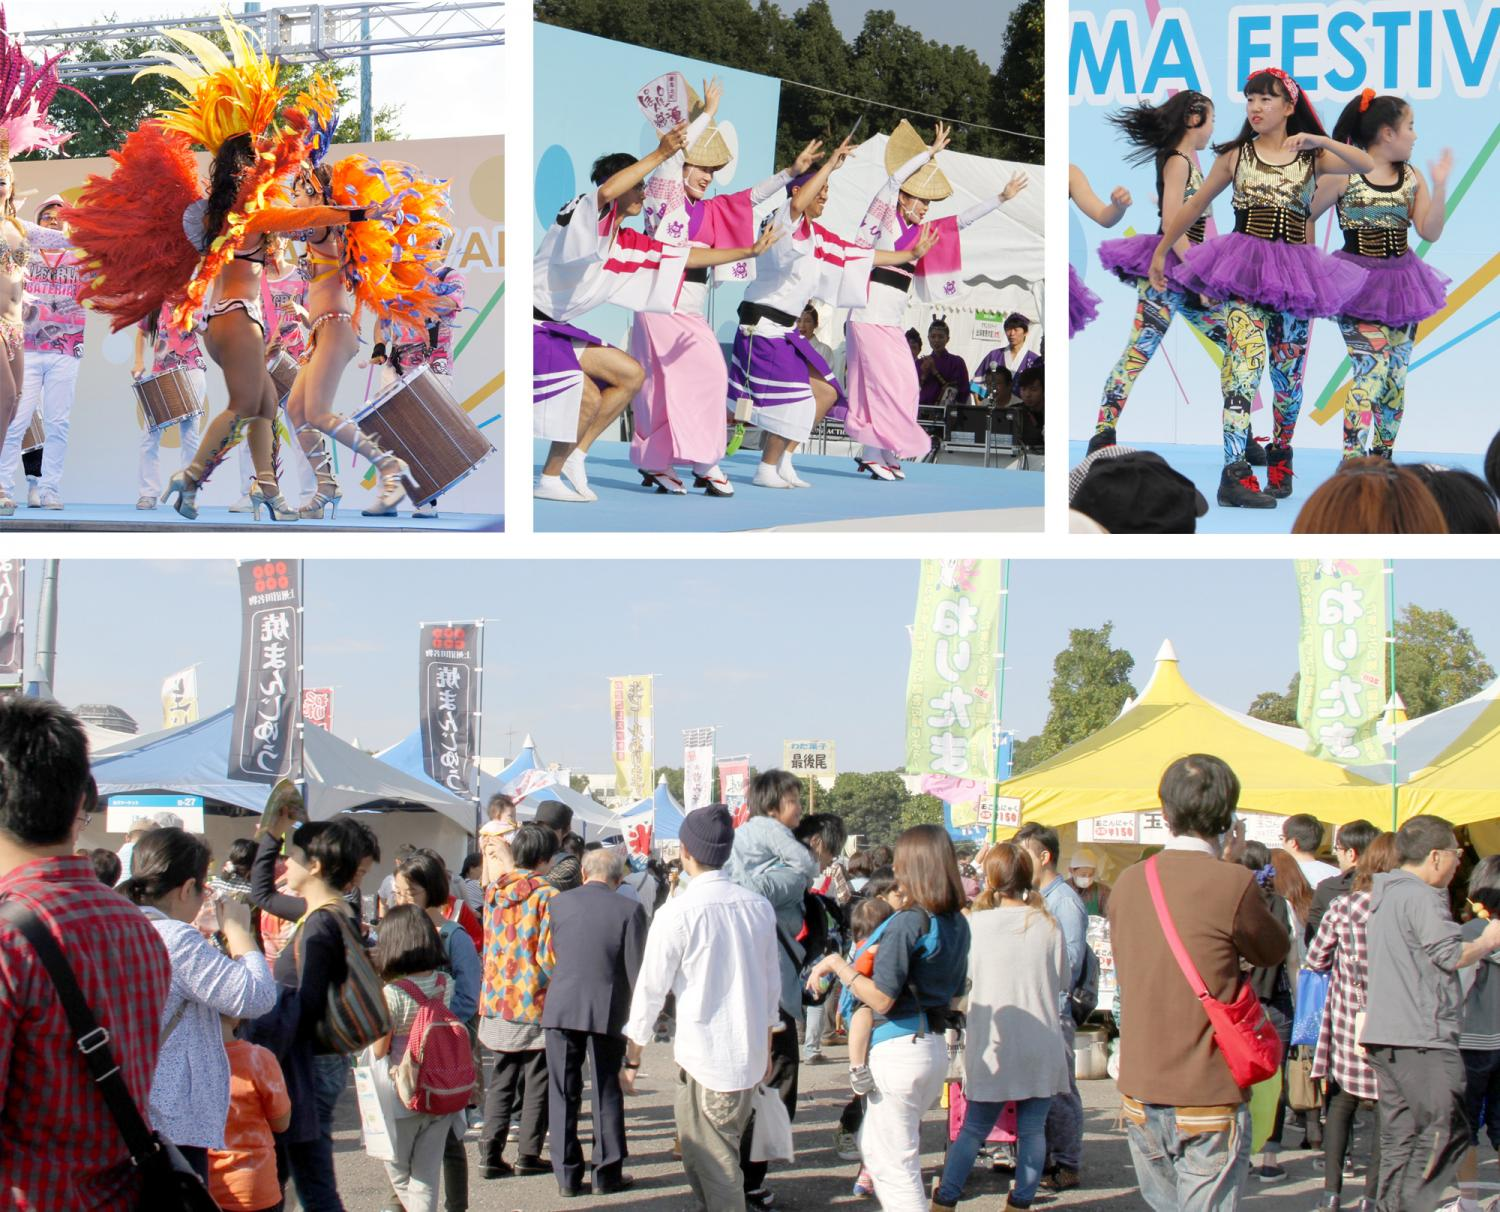 Let's enjoy parade & Nerima festival of the 70th anniversary! Image